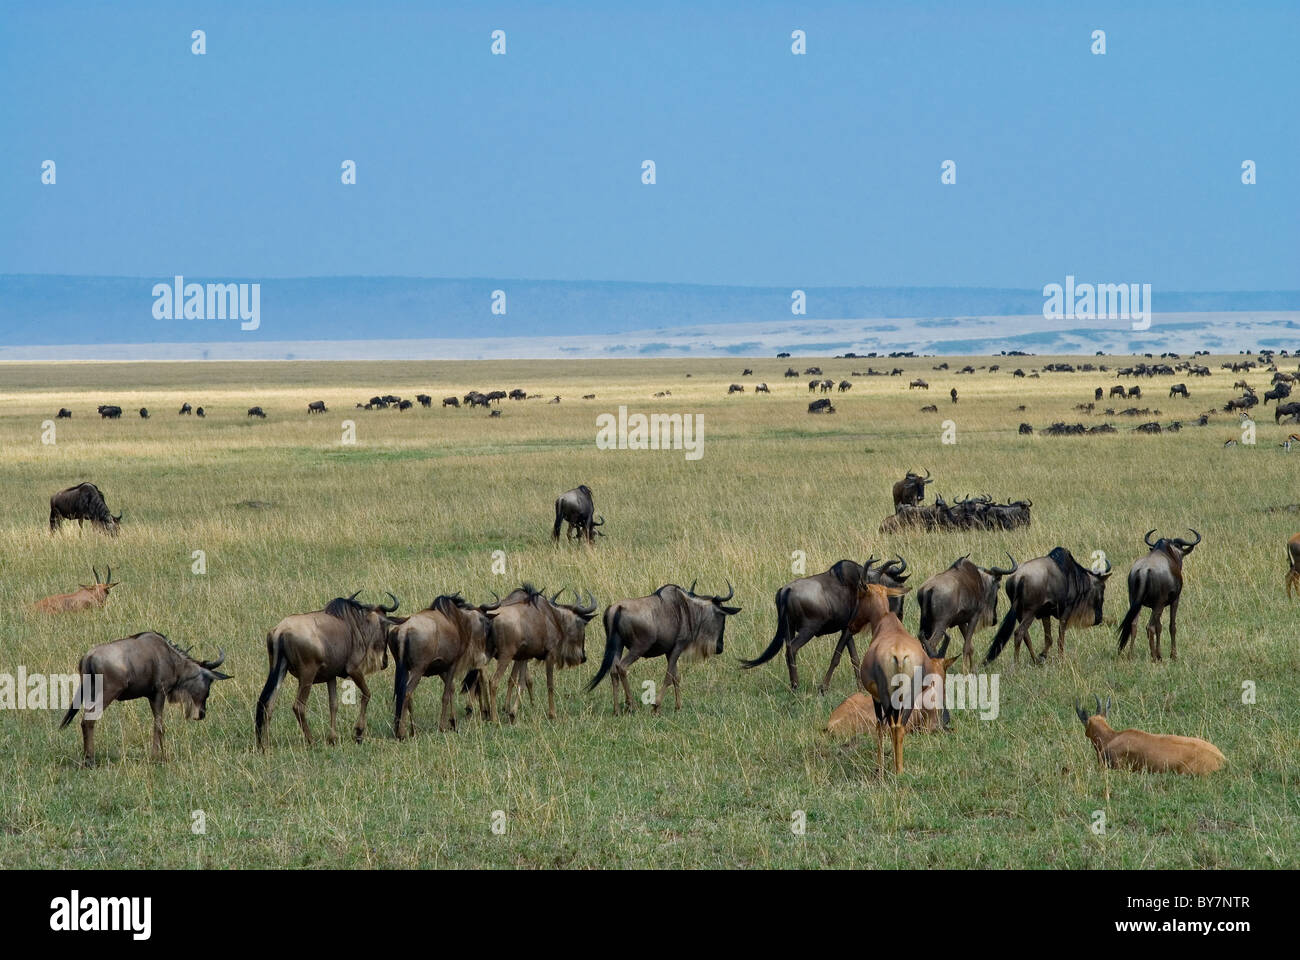 Wildebeest on the Masai Mara in Kenya - Stock Image